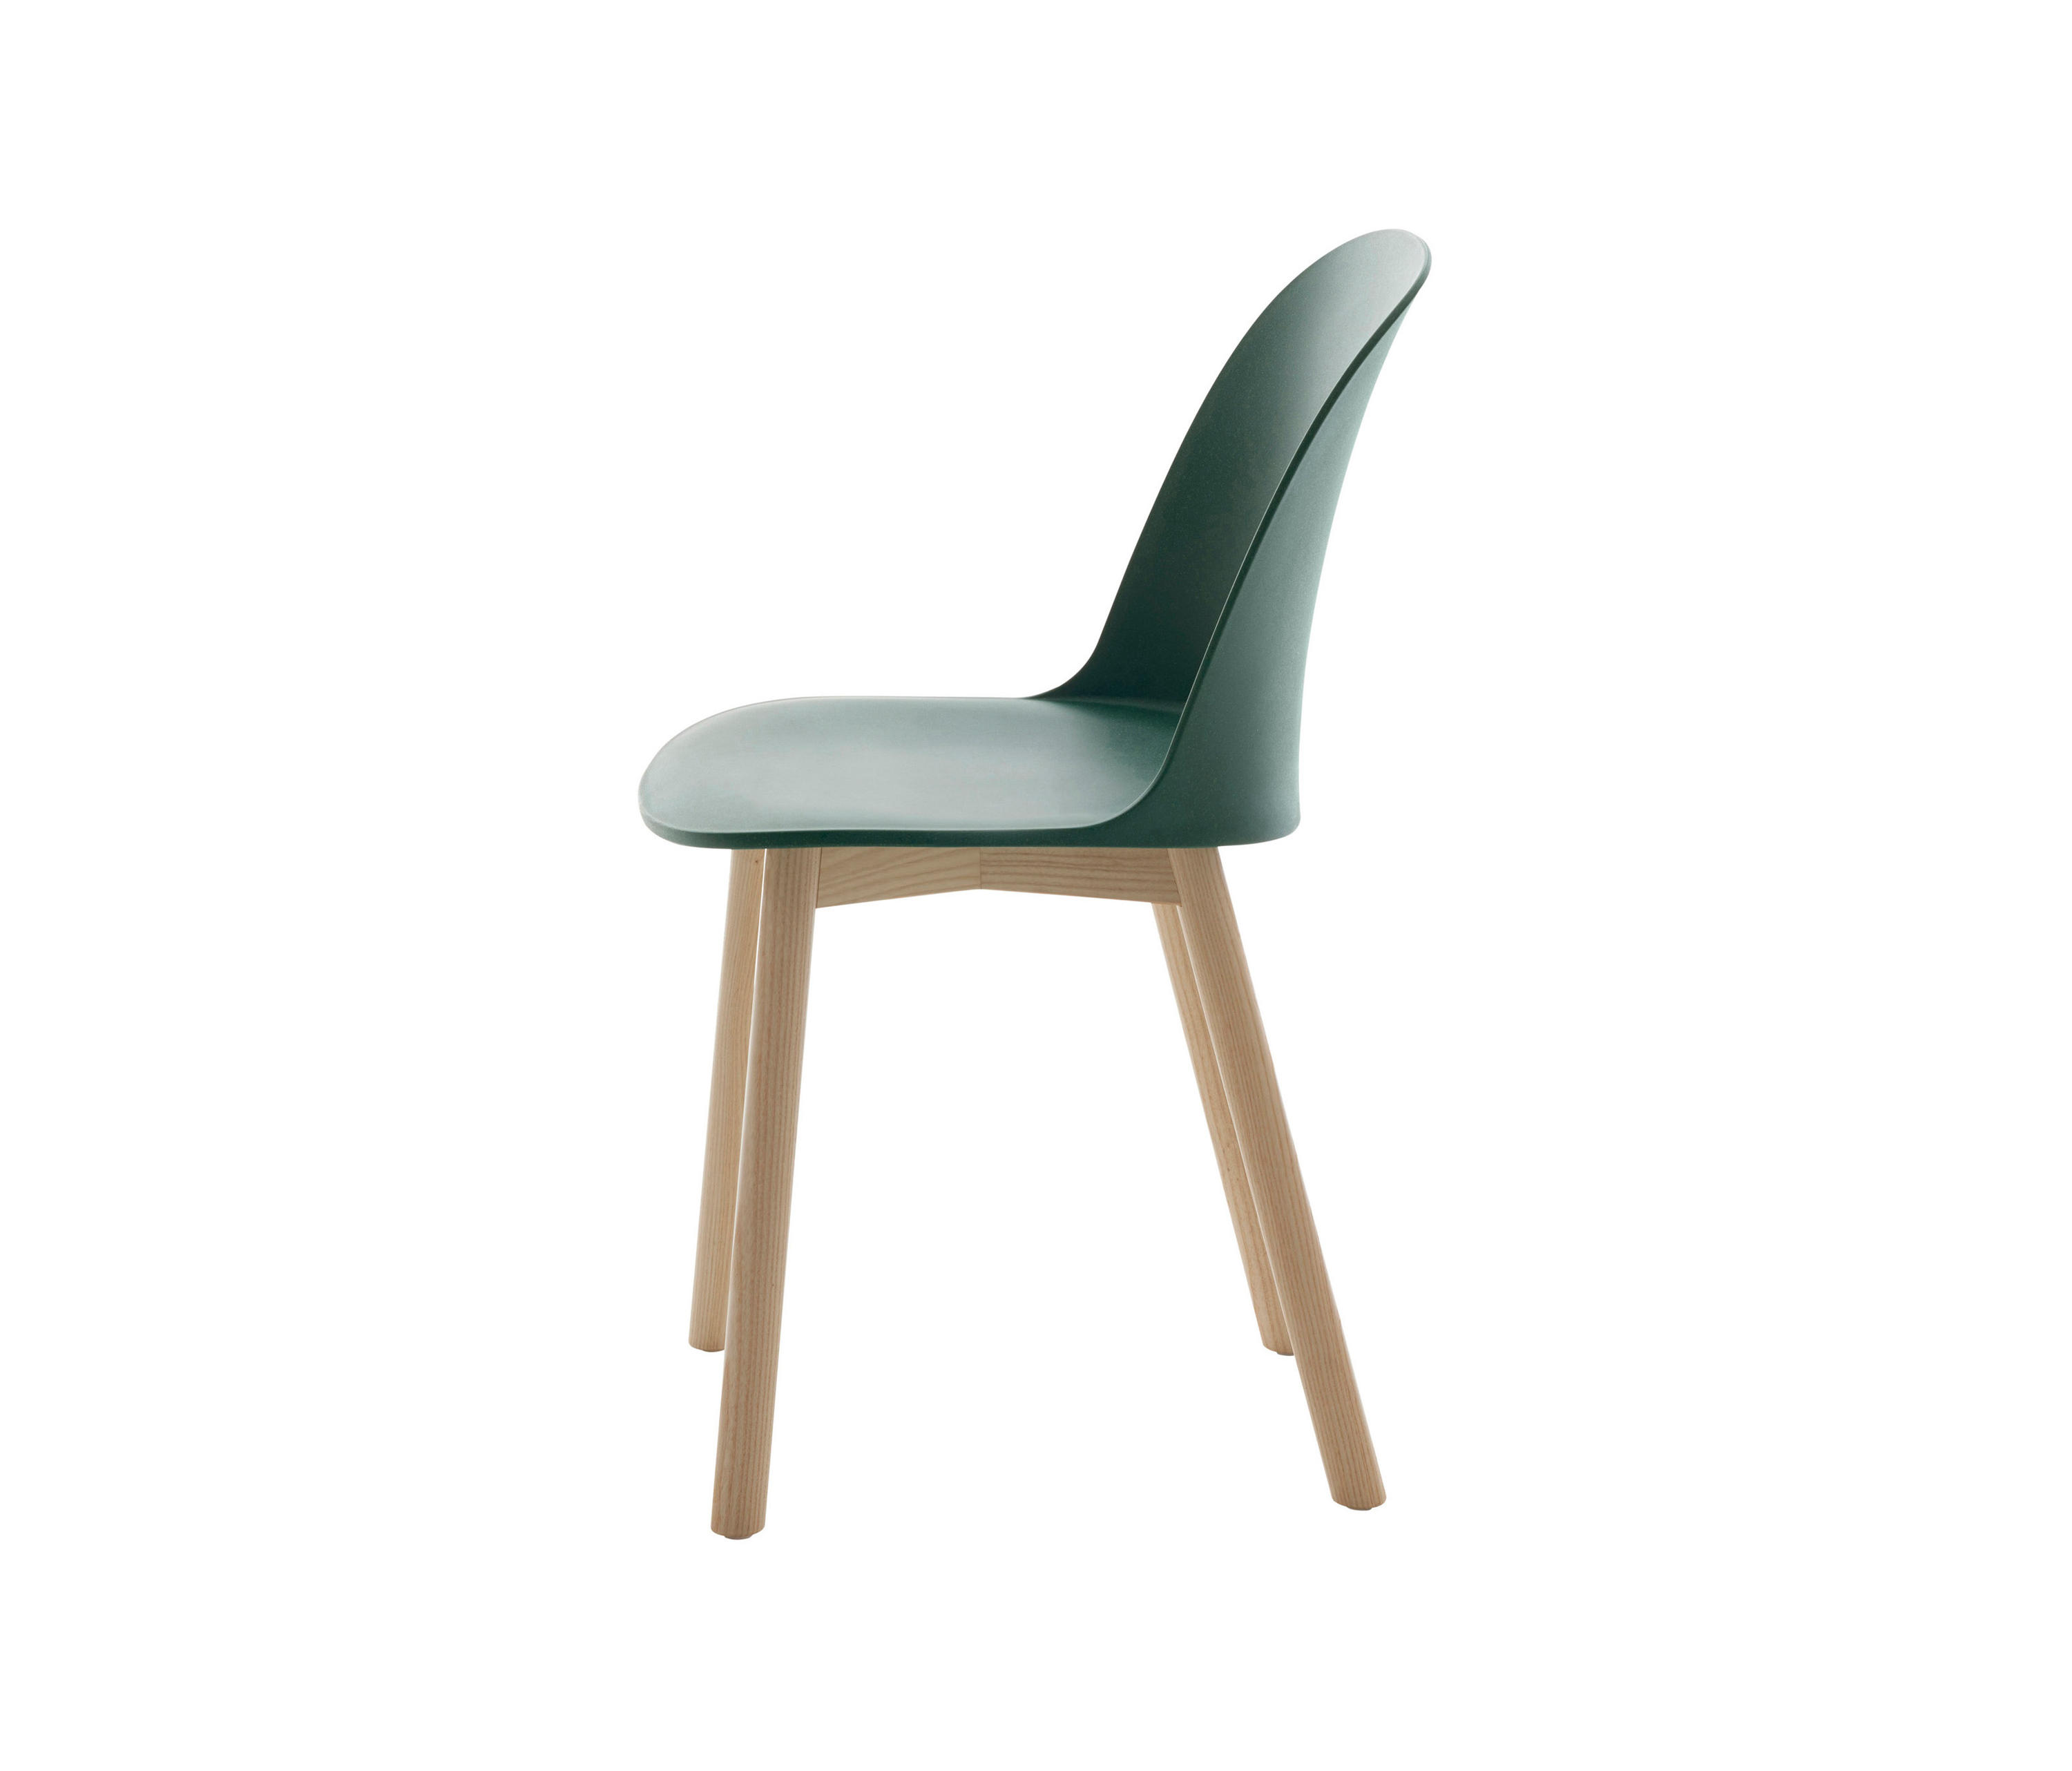 alfi chair high back  restaurant chairs from emeco  architonic -  alfi chair high back by emeco  restaurant chairs